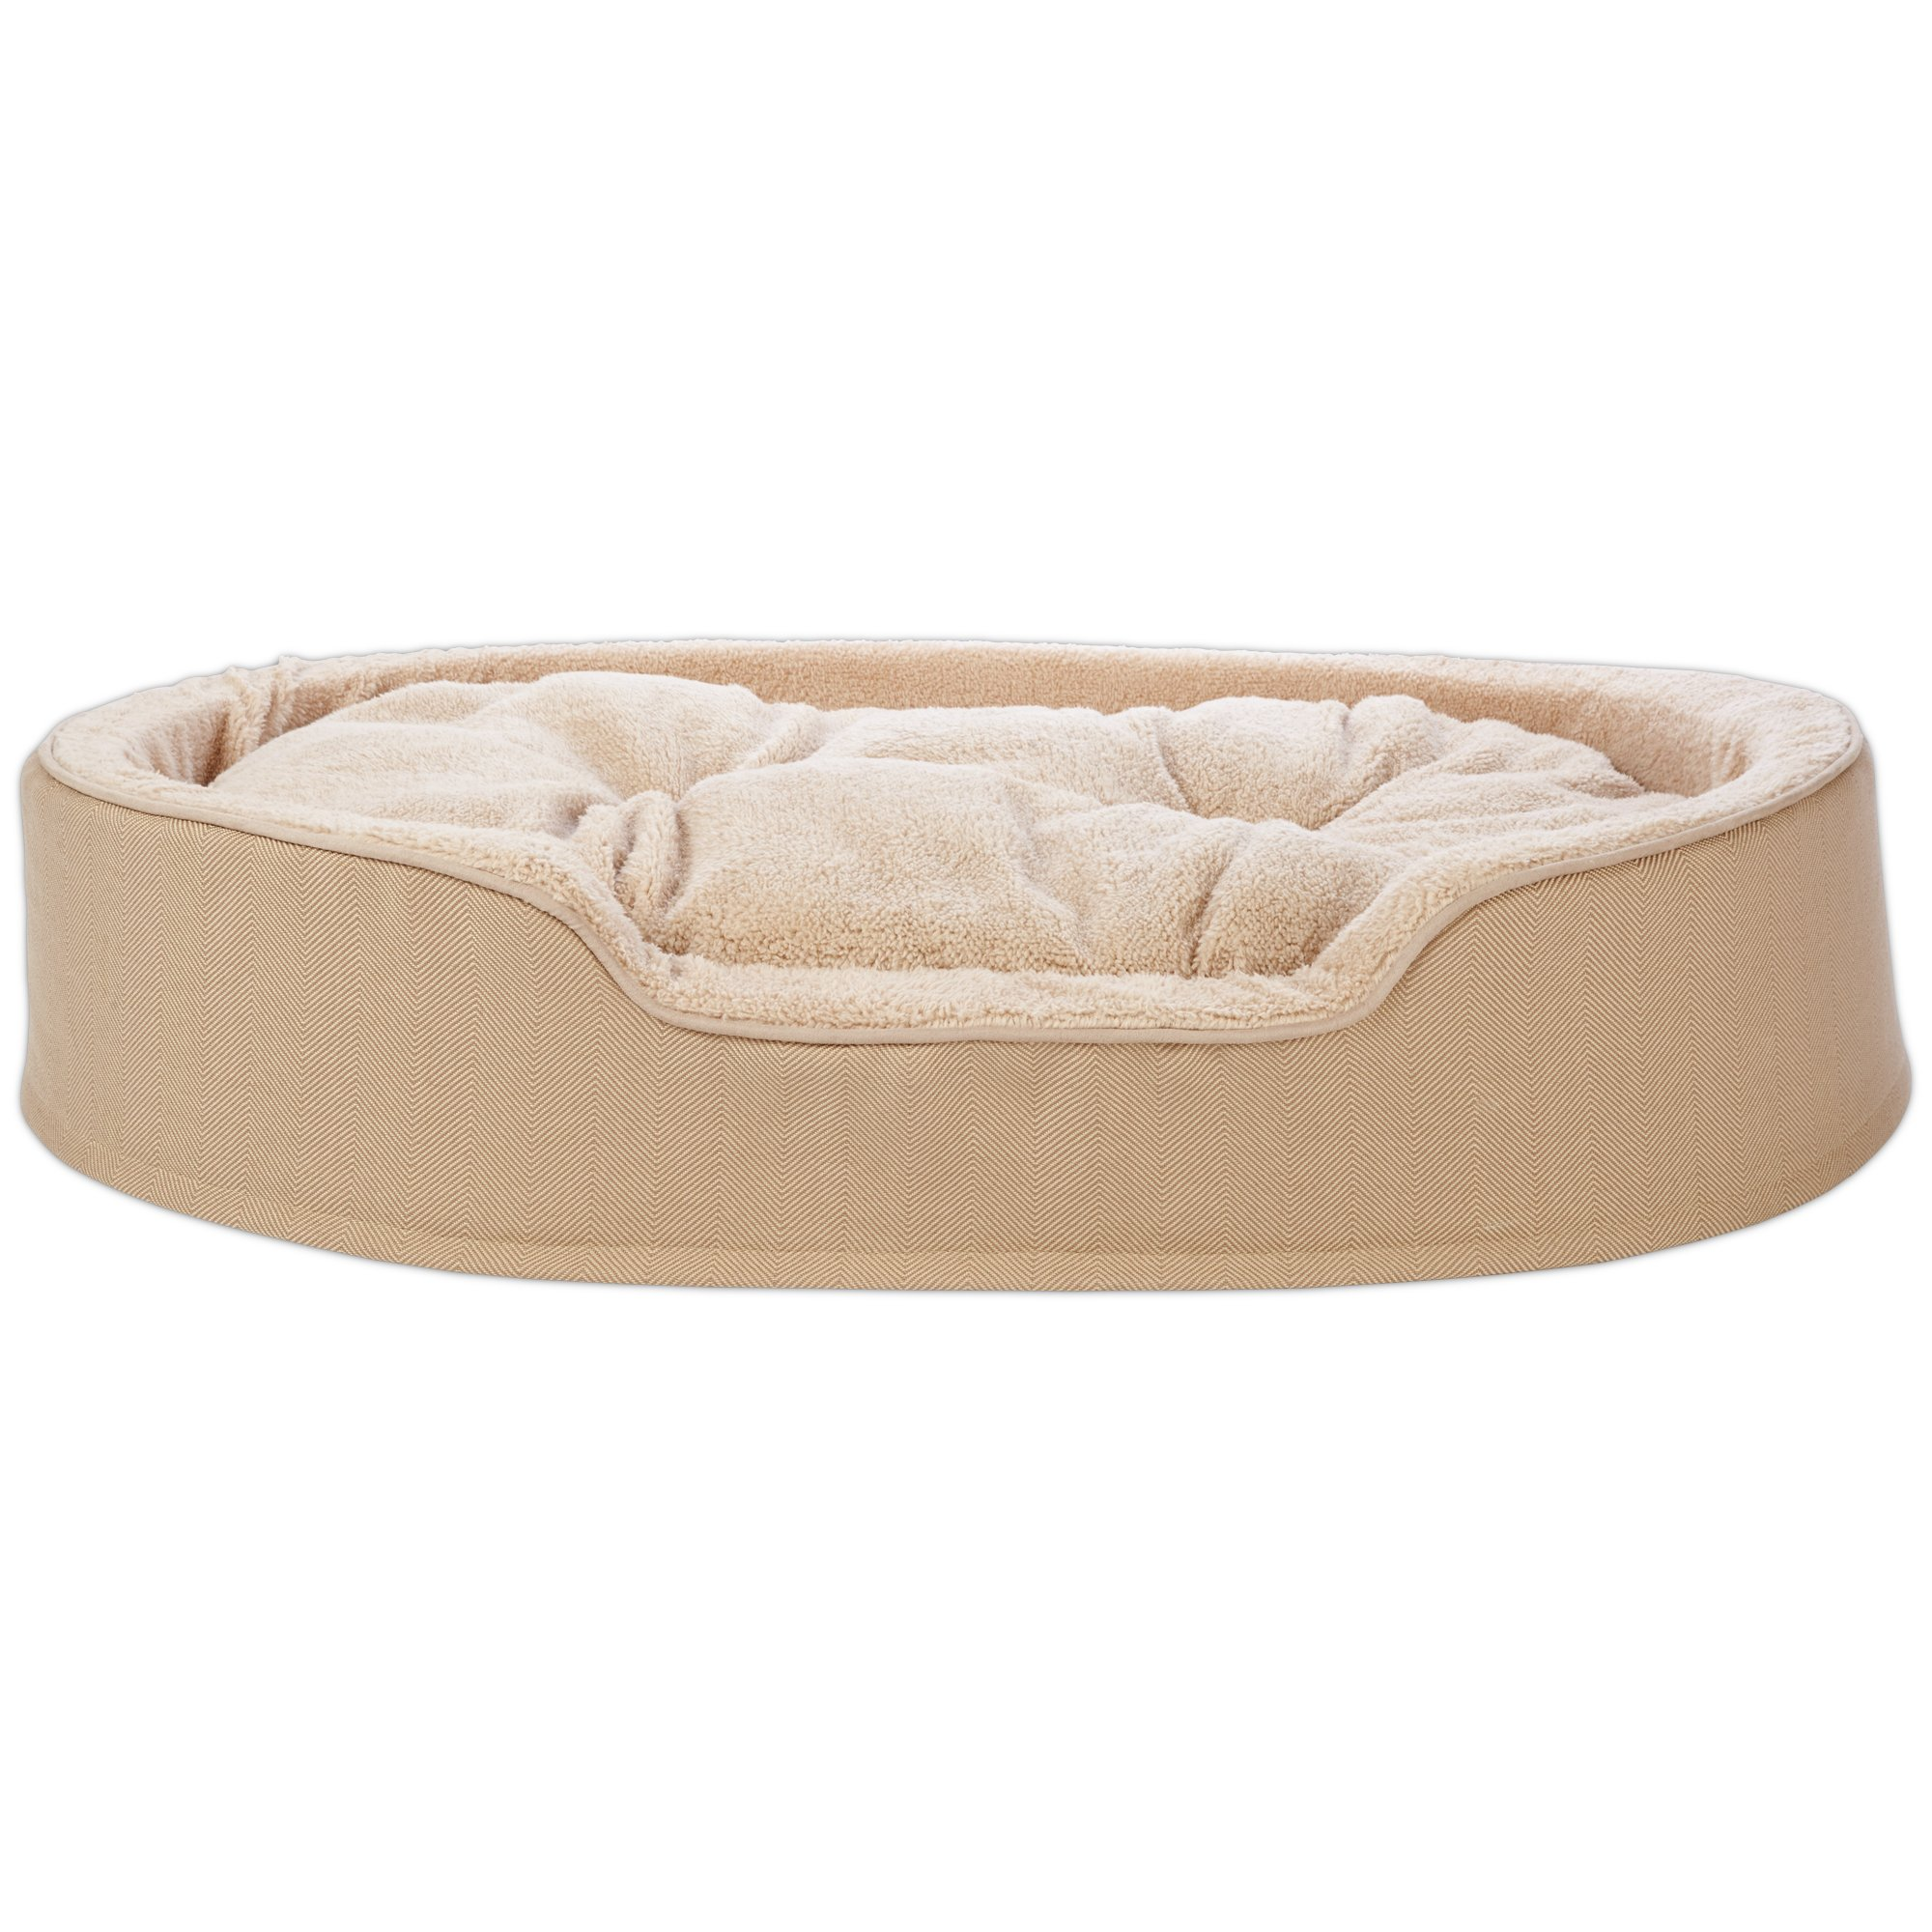 foam cover memory beds large with dog bed x removable ip com walmart